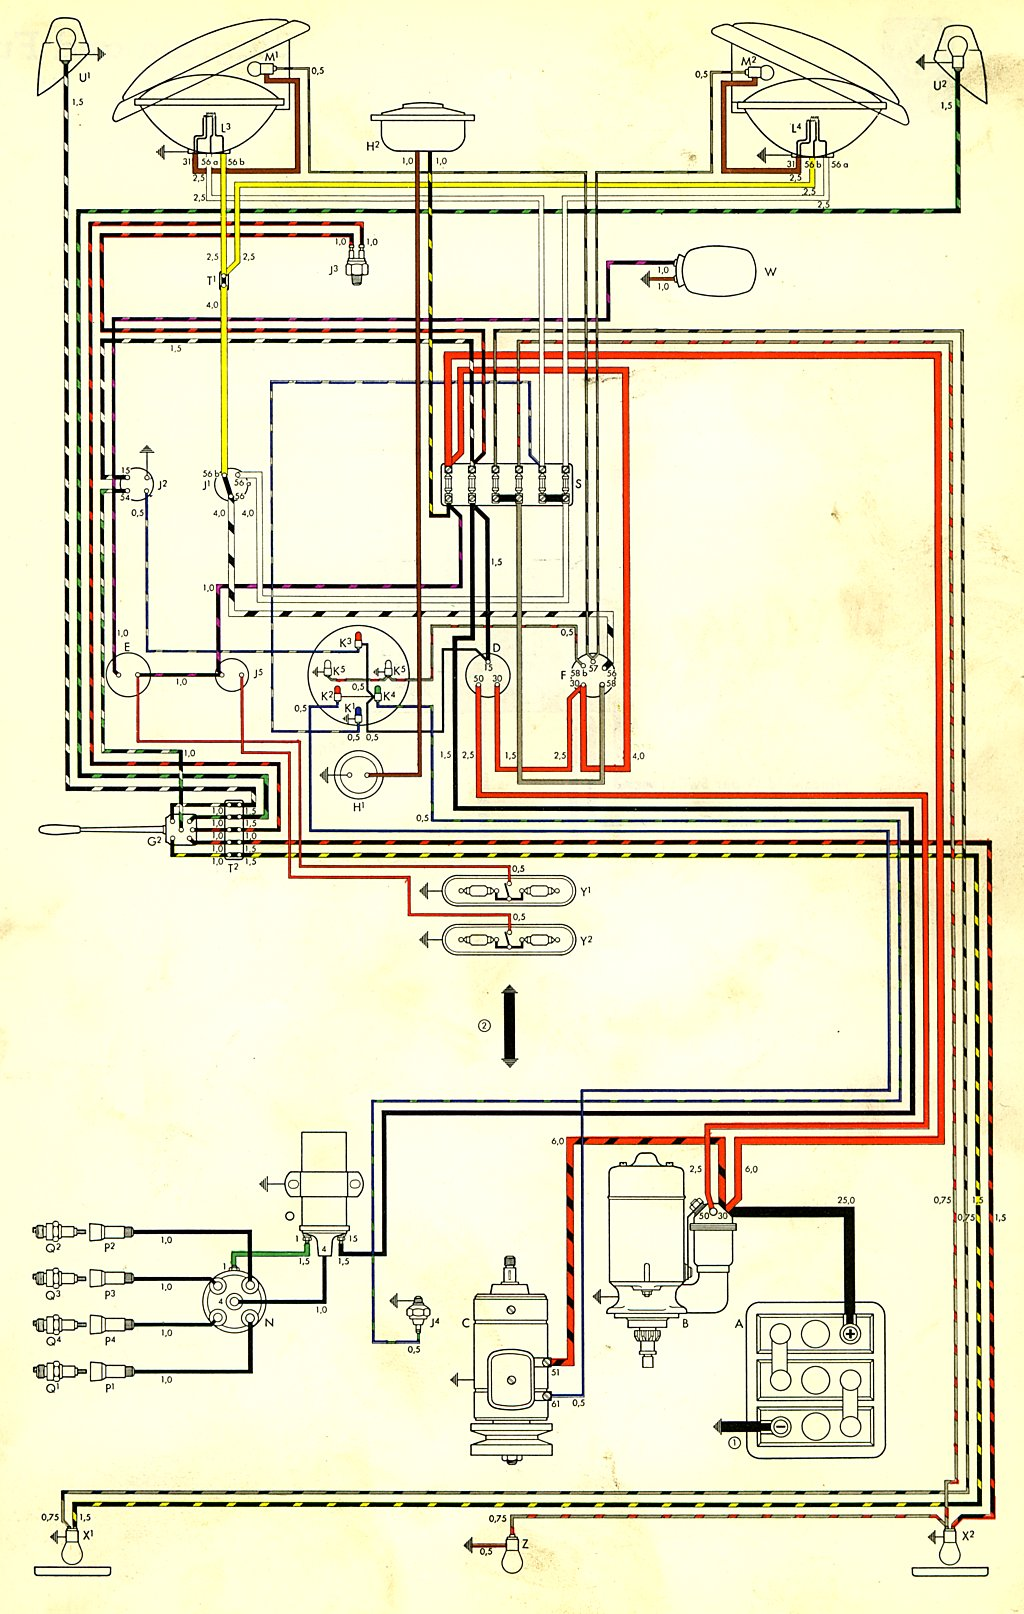 bus_59_USA bus wiring diagram vw wiring harness diagram \u2022 wiring diagrams j 2000 VW Beetle Alternator Wiring Harness at suagrazia.org